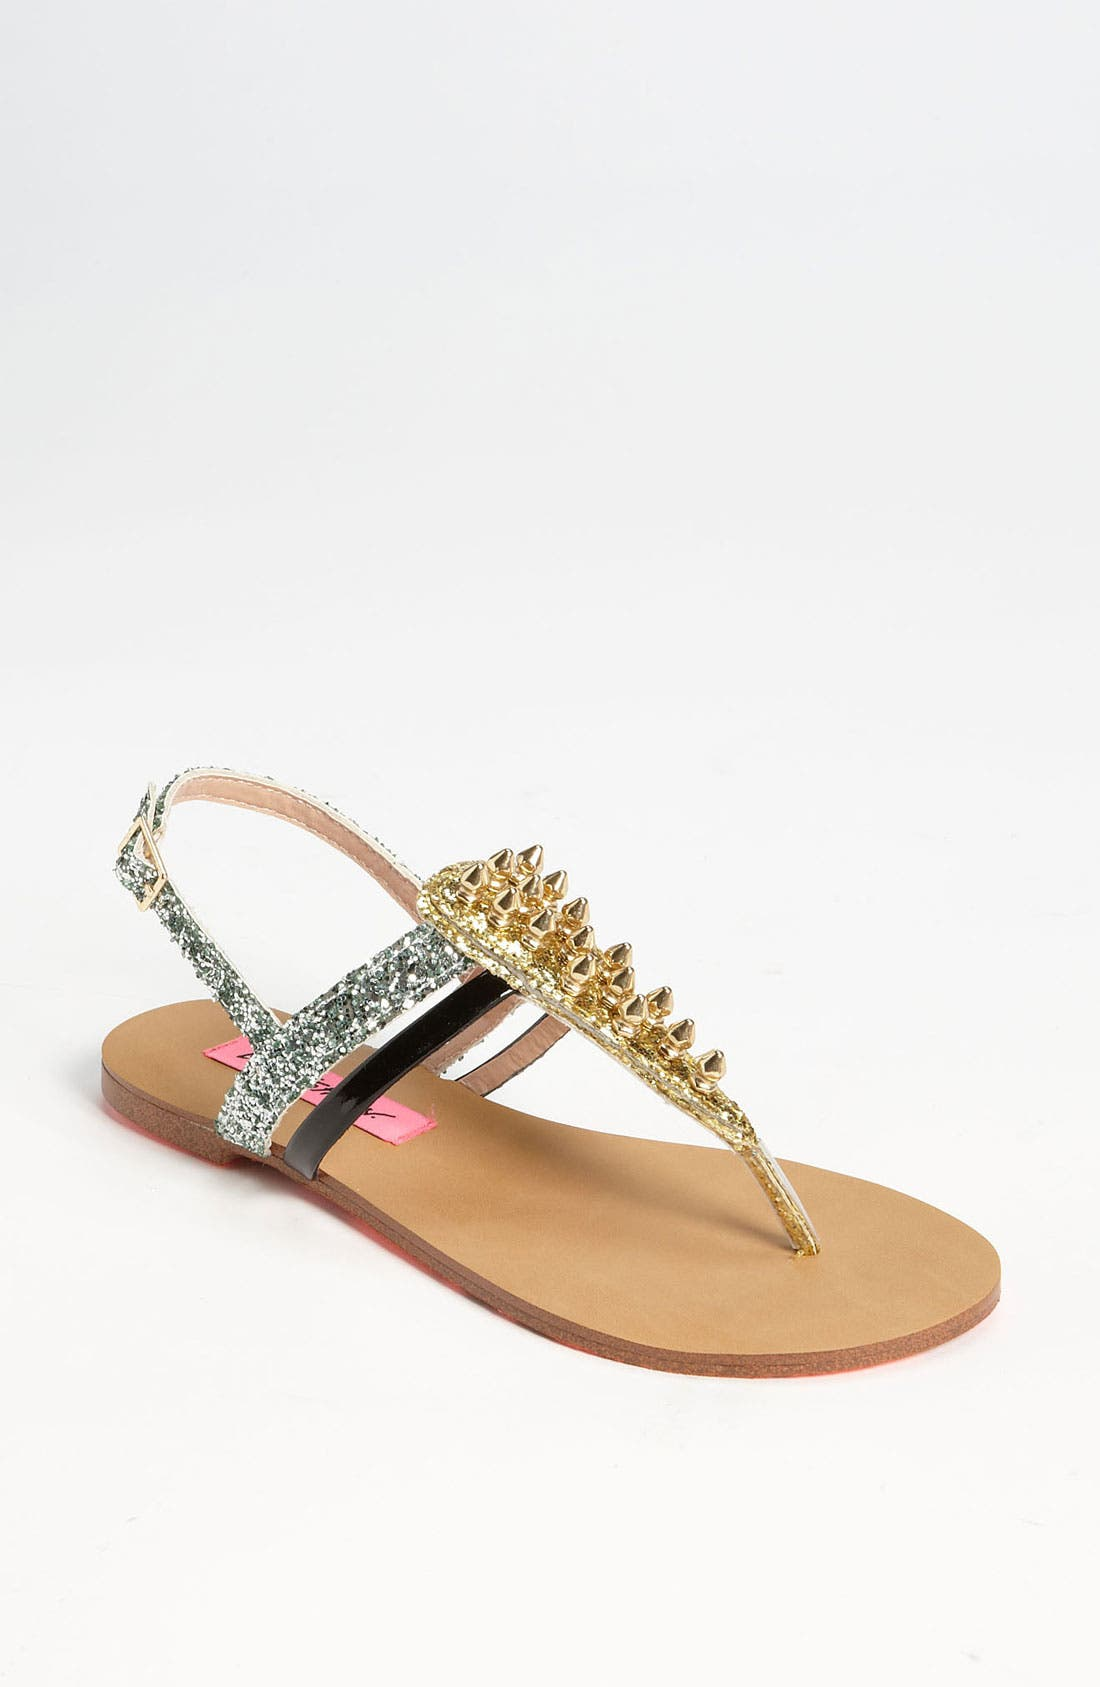 Main Image - Betsey Johnson 'Corii' Sandal